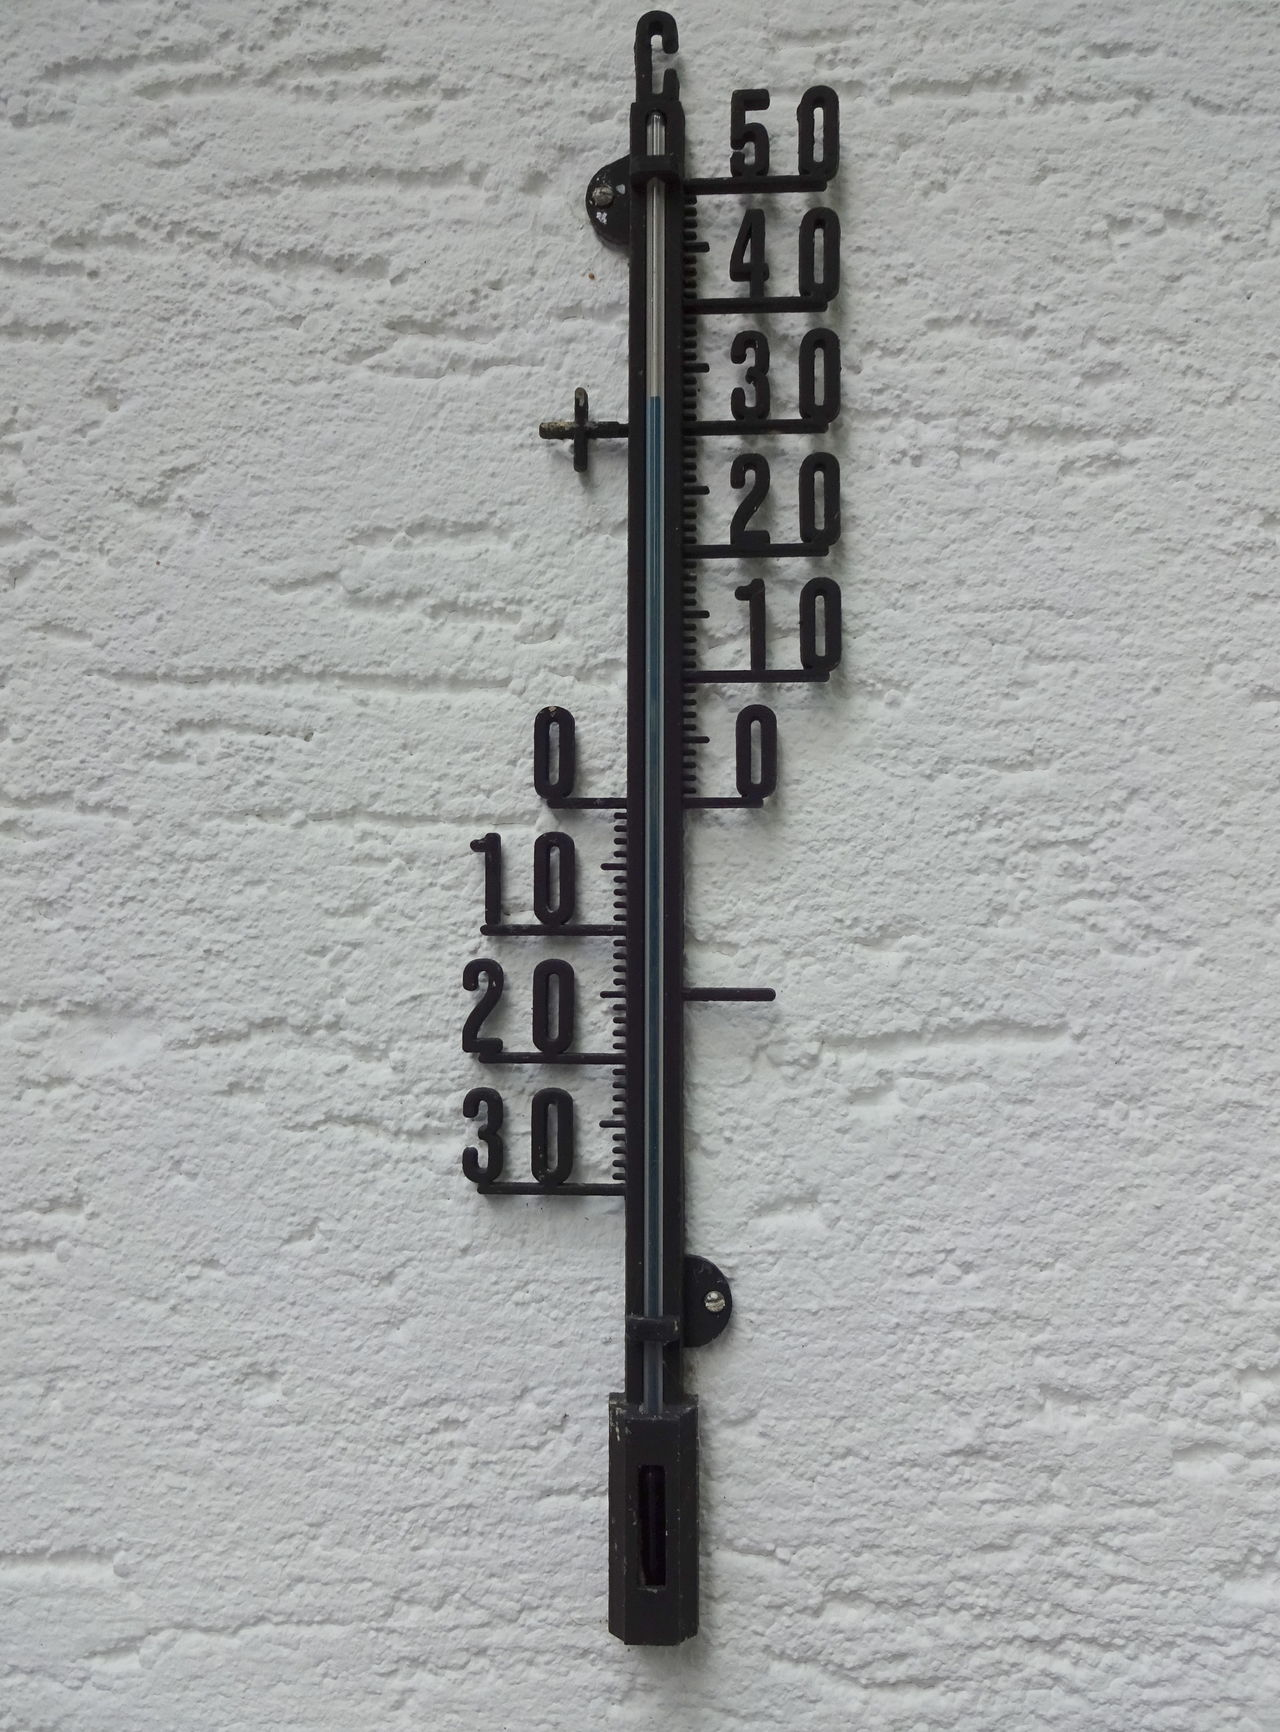 Close-up Day No People Outdoors Part Of Repetition Summer Summertime Thermometer